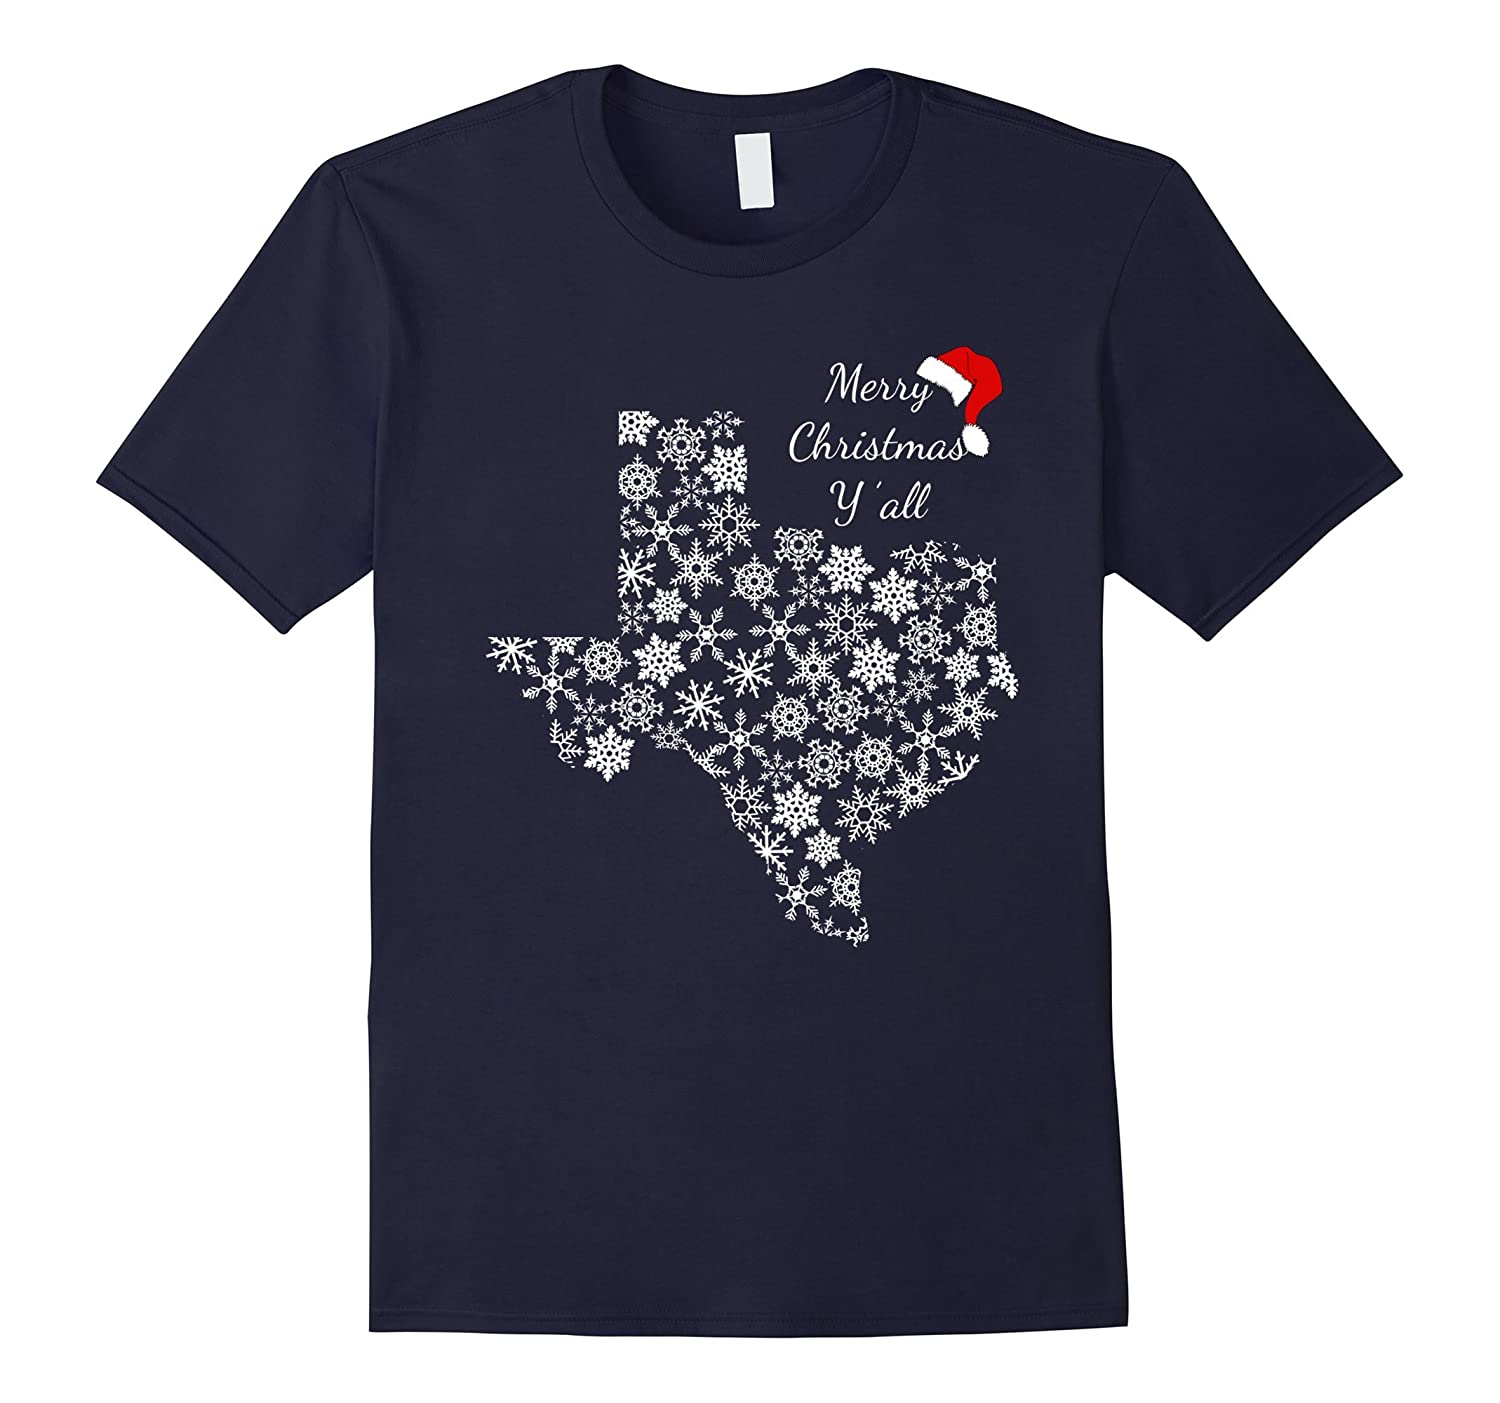 Texas Christmas Shirts T Shirt Design For Xmas Party Gift Anz